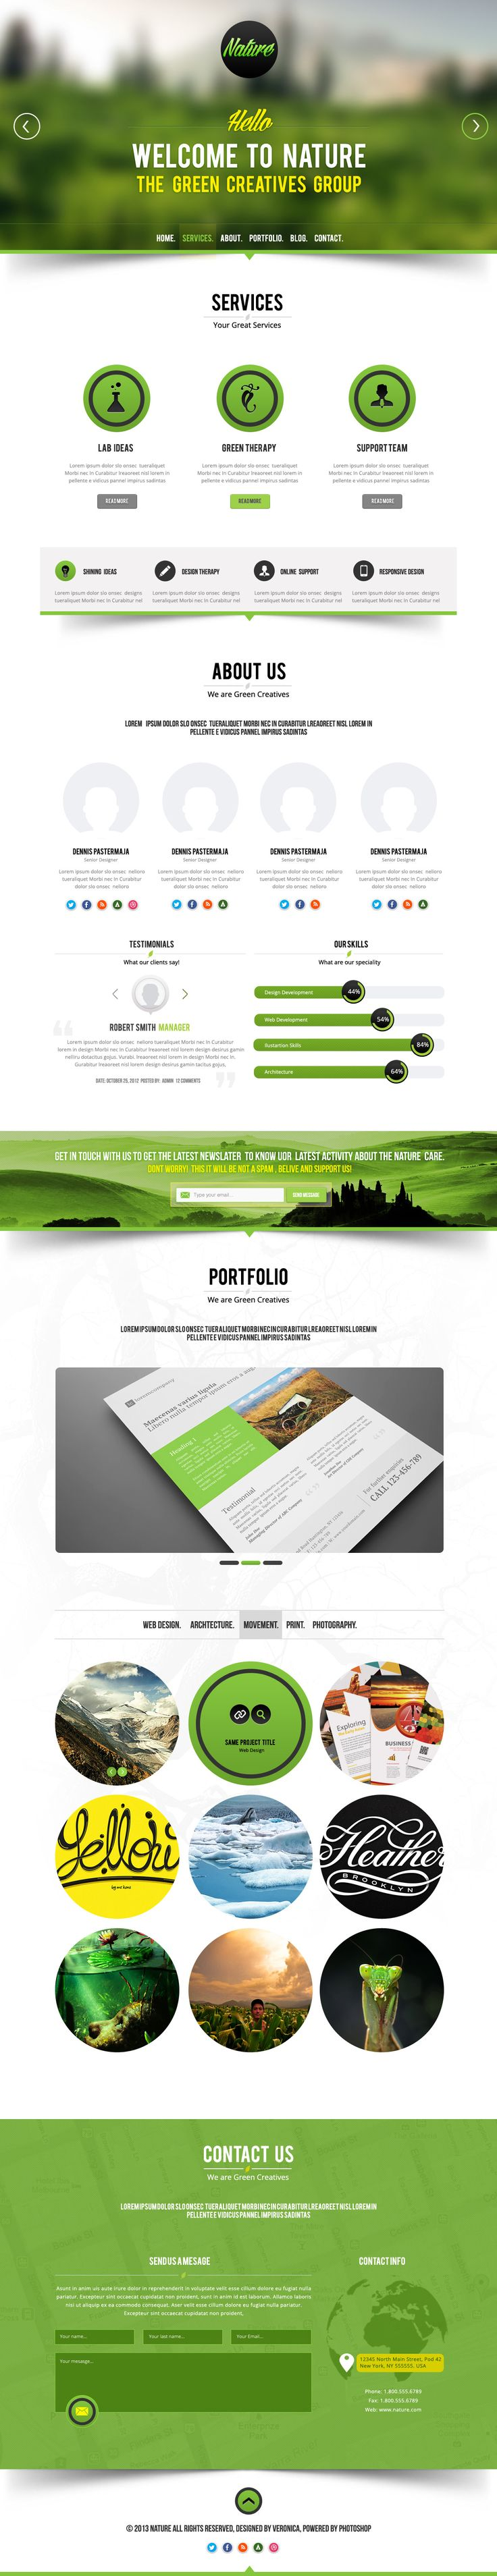 Nature Psd Template | #webdesign #it #web #design #layout #userinterface #website #webdesign